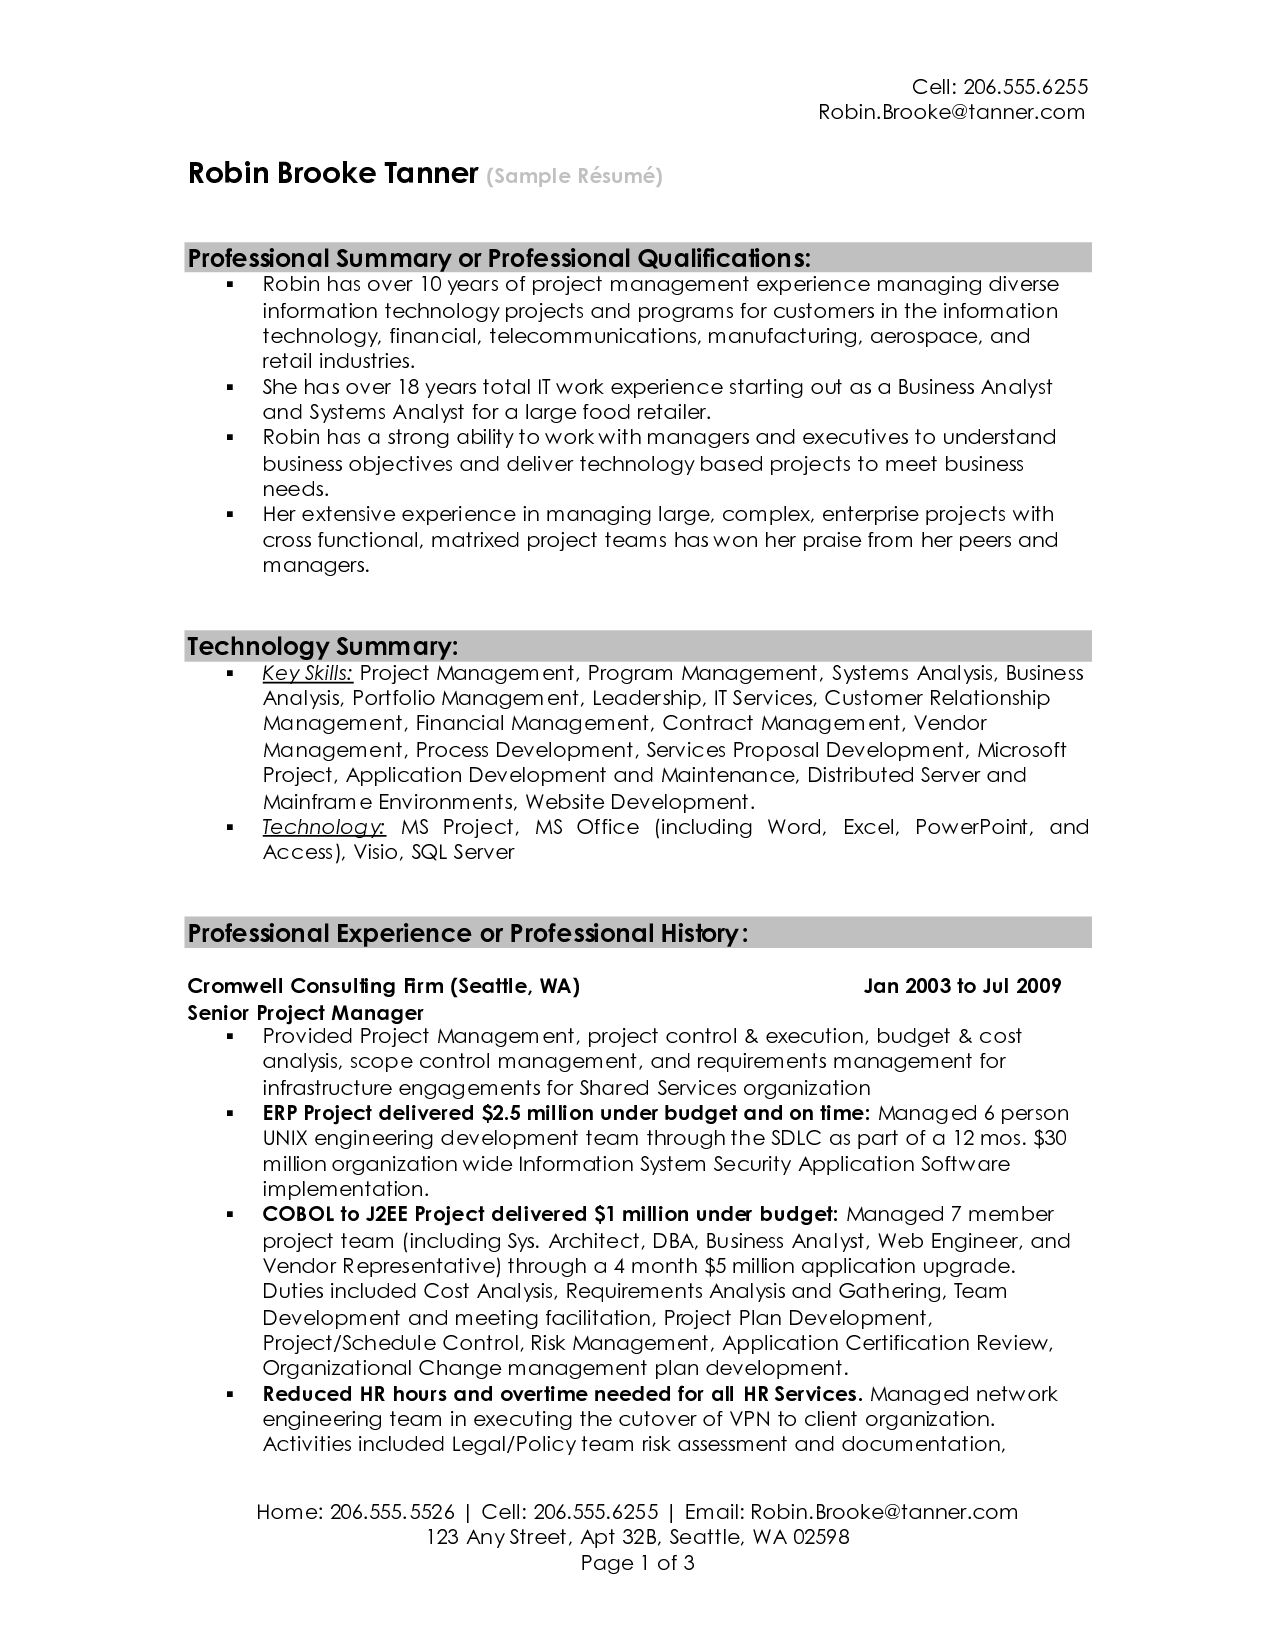 Professional Summary Resume Examples Professional Resume Summary Examples  77e7fb28f  What A Professional Resume Looks Like